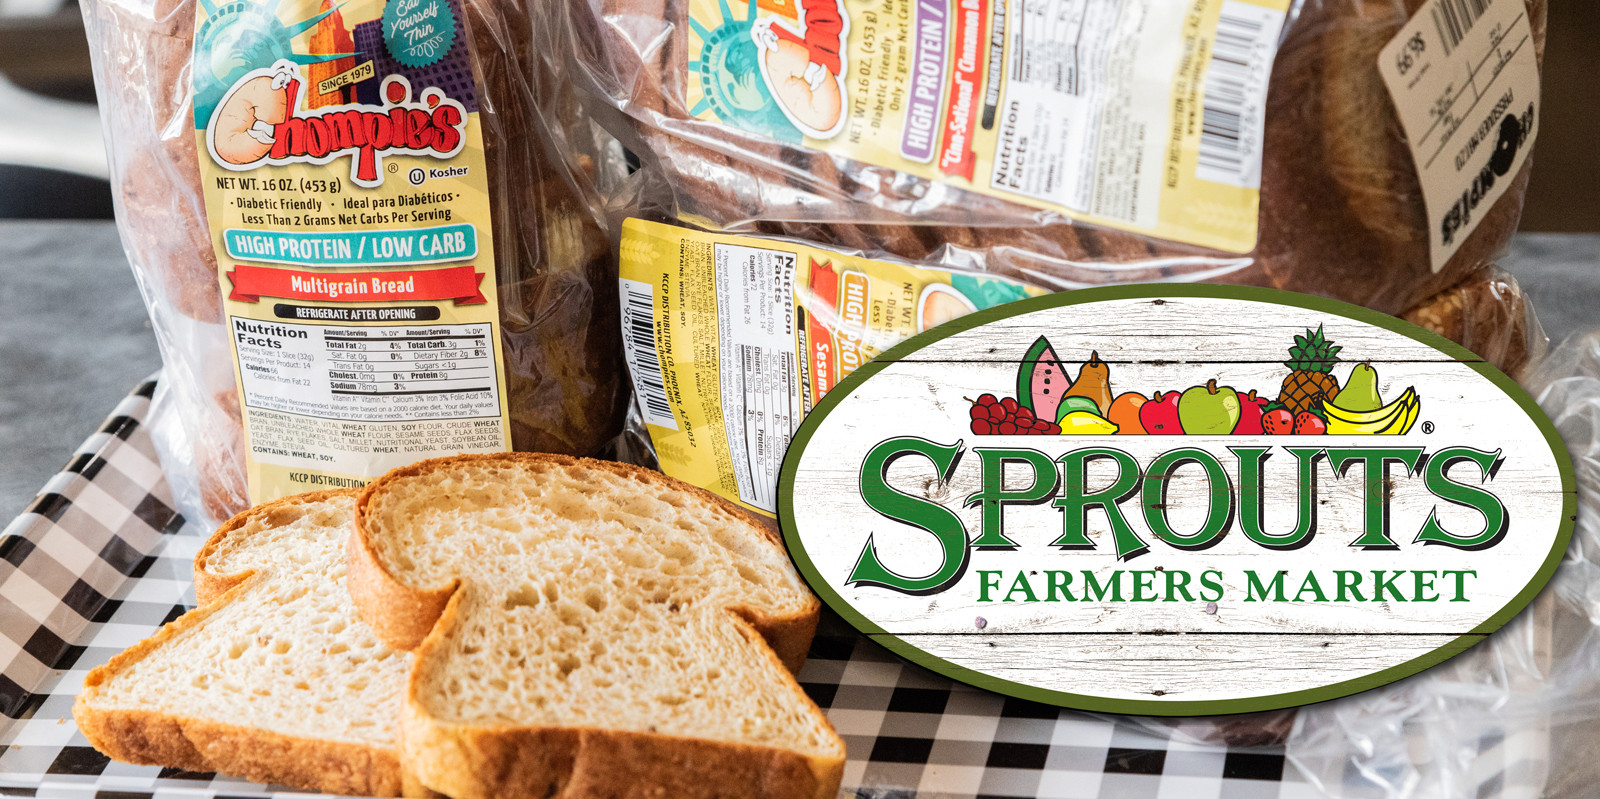 Low Carb Bread In Stores  Low Carb Bread Now Sold at Sprouts Farmers Market